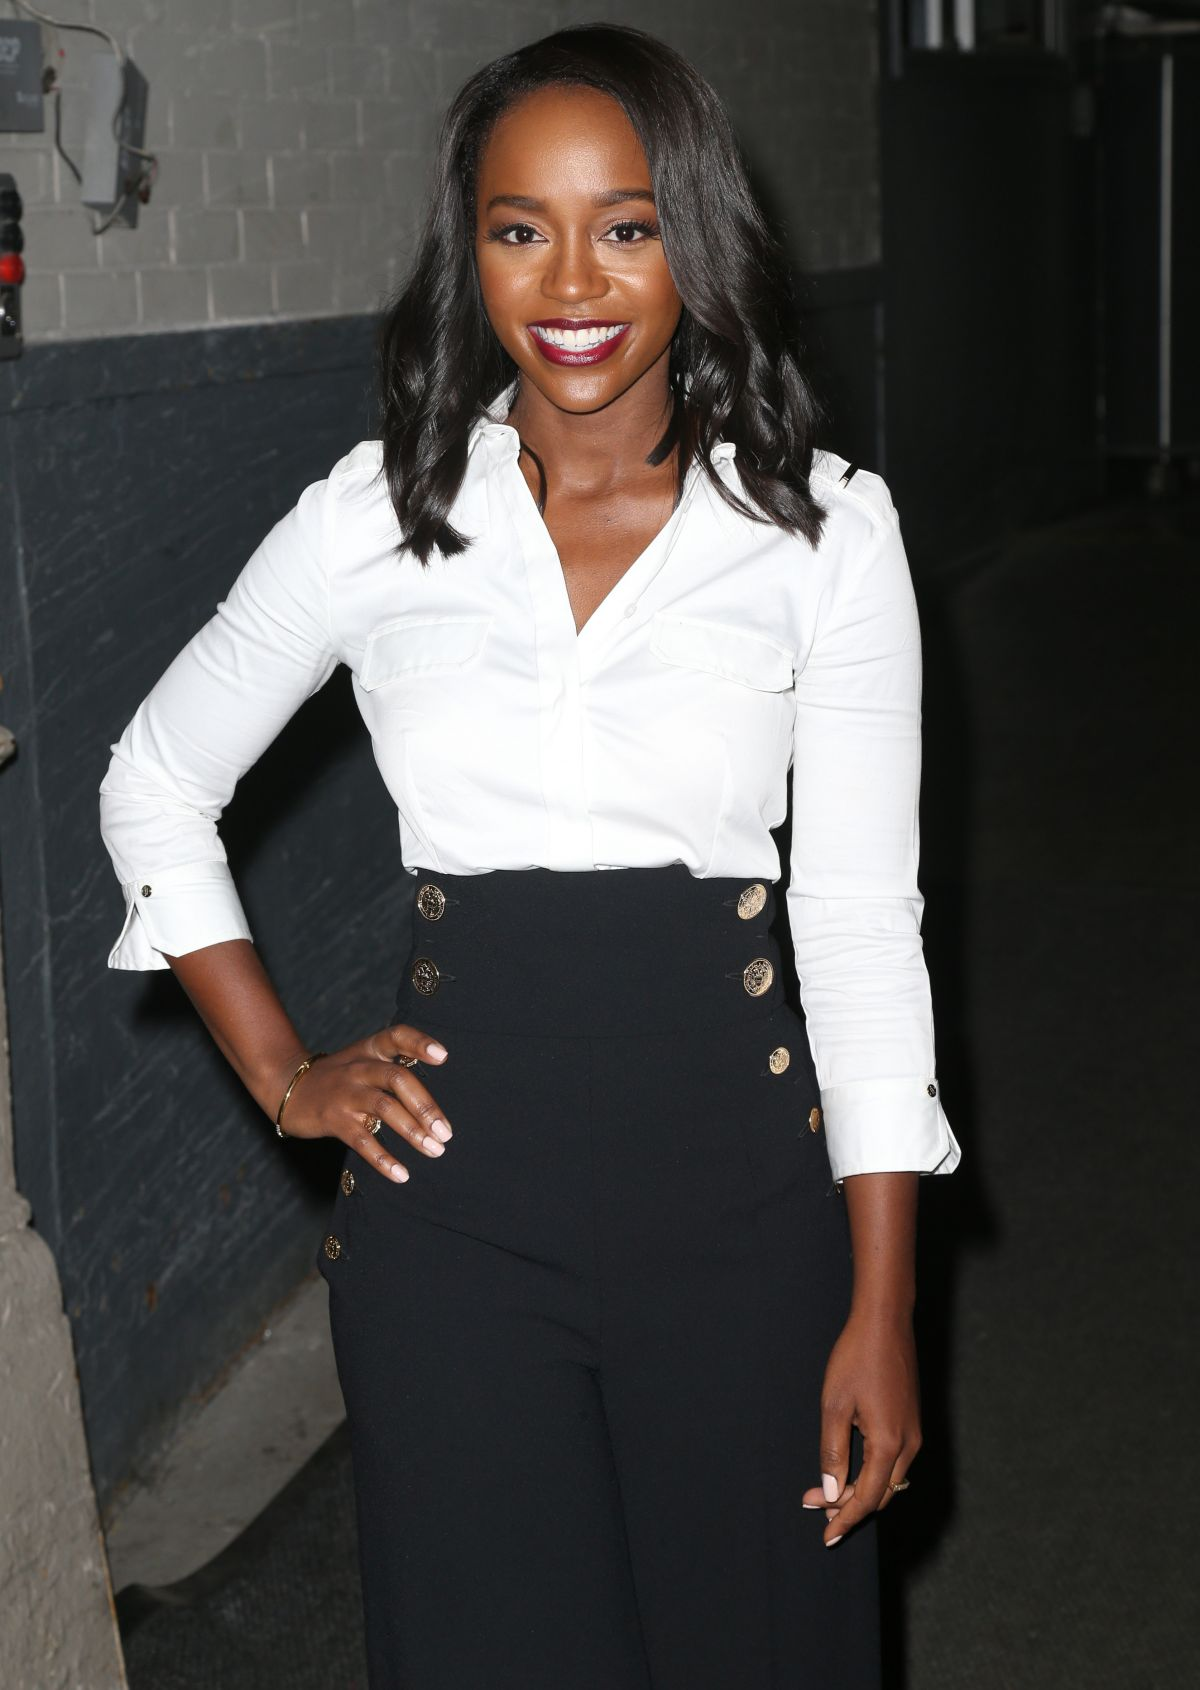 AJA NAOMI KING at AOL Studios in New York 10/05/2016